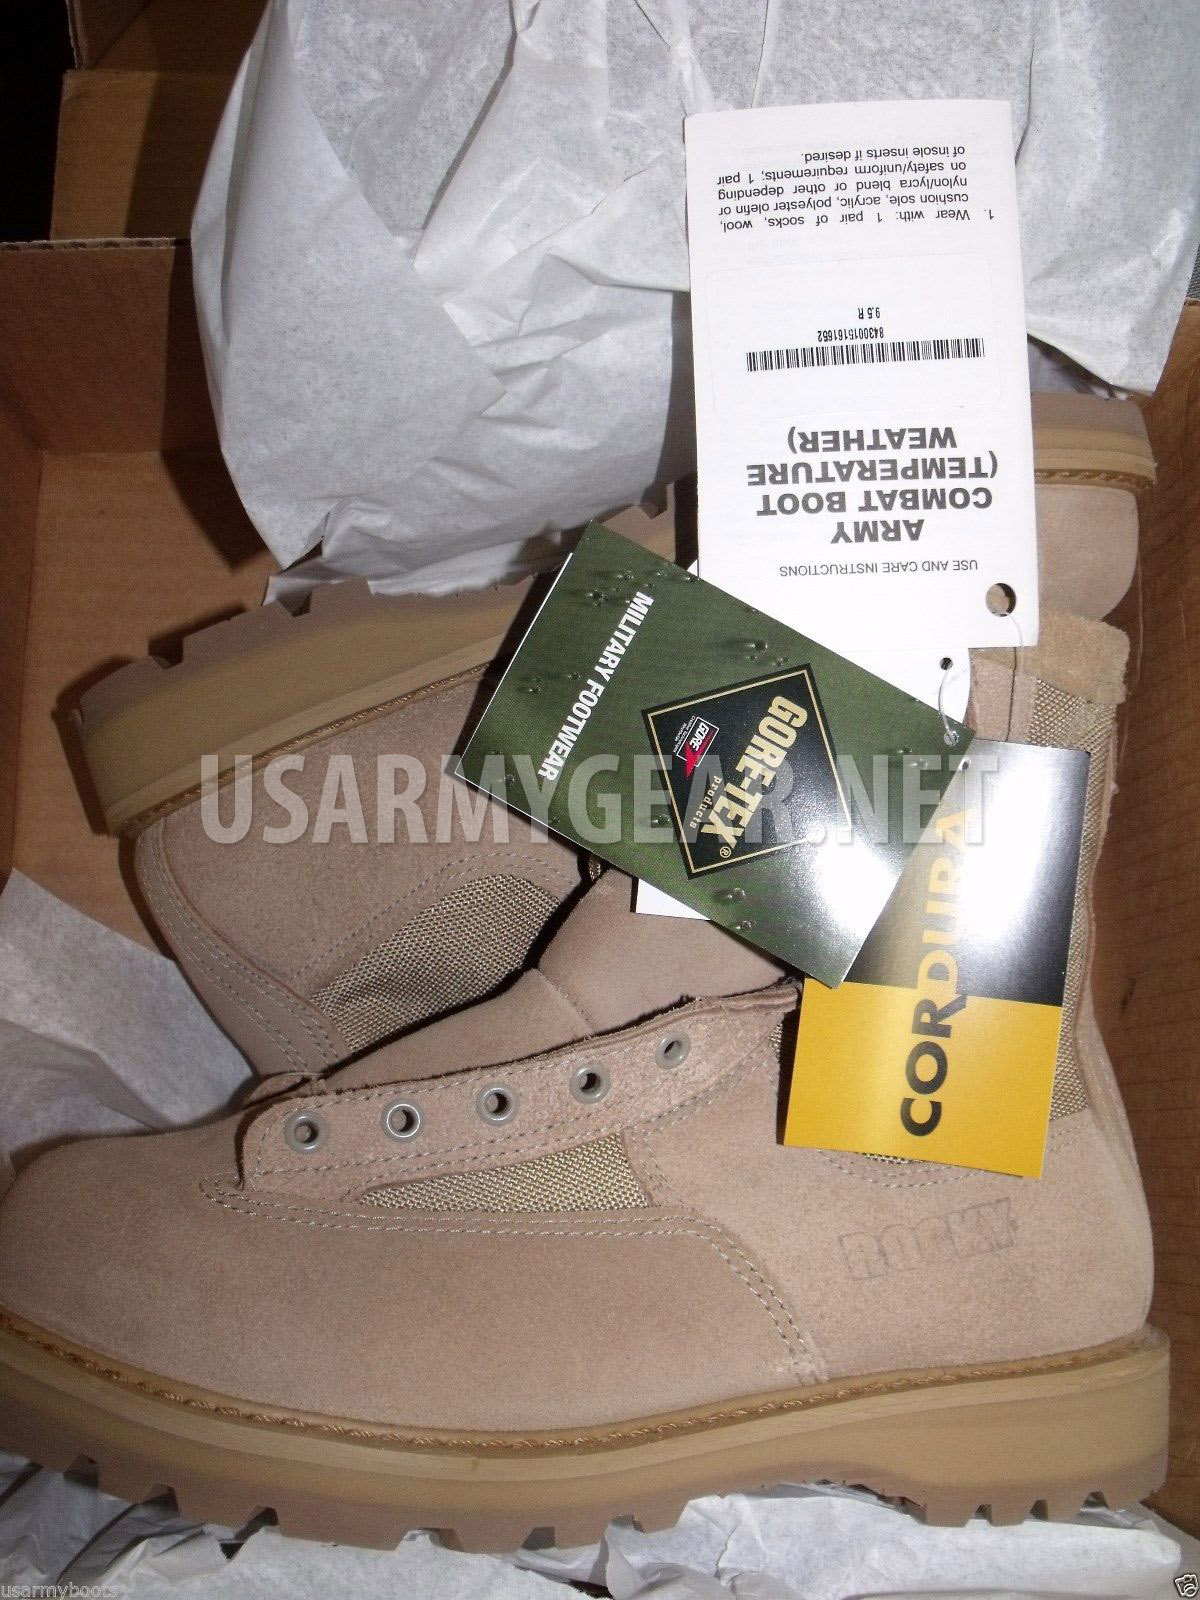 USA Made New 790 G Rocky Desert Goretex Military Boots 10 R  d6193408ab5